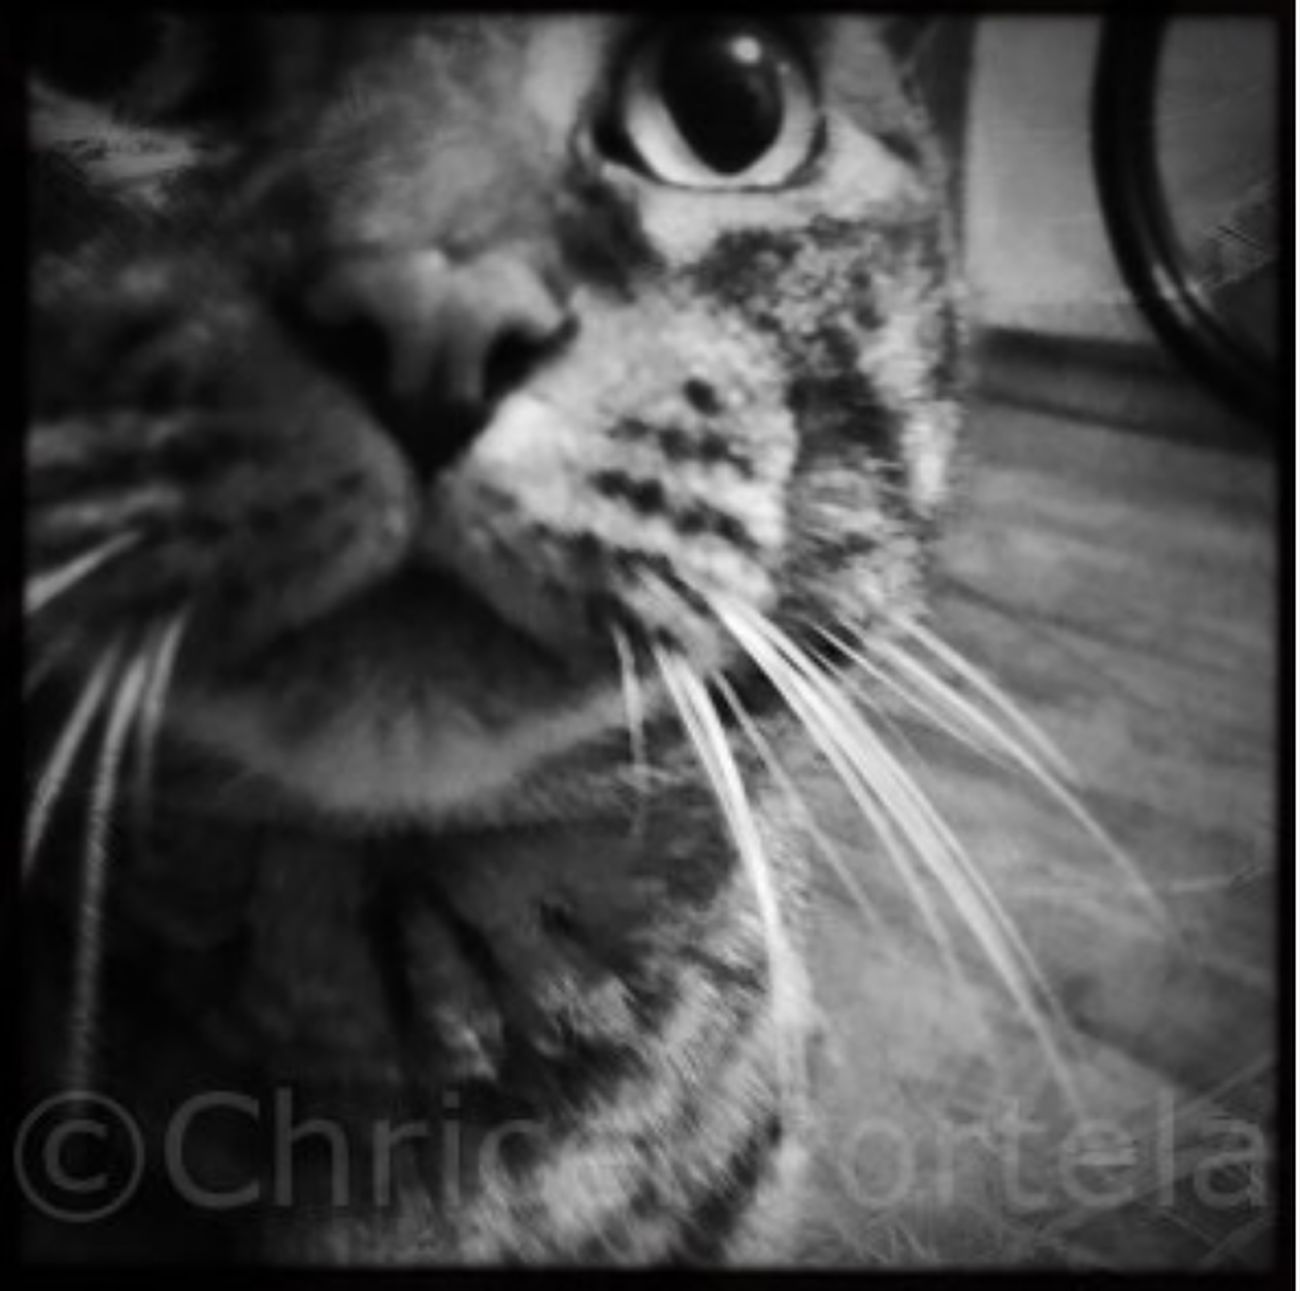 Close-up Day Domestic Animals Domestic Cat Feline Headshot Indoors  Looking At Camera Mammal No People One Animal Pets Portrait Whisker